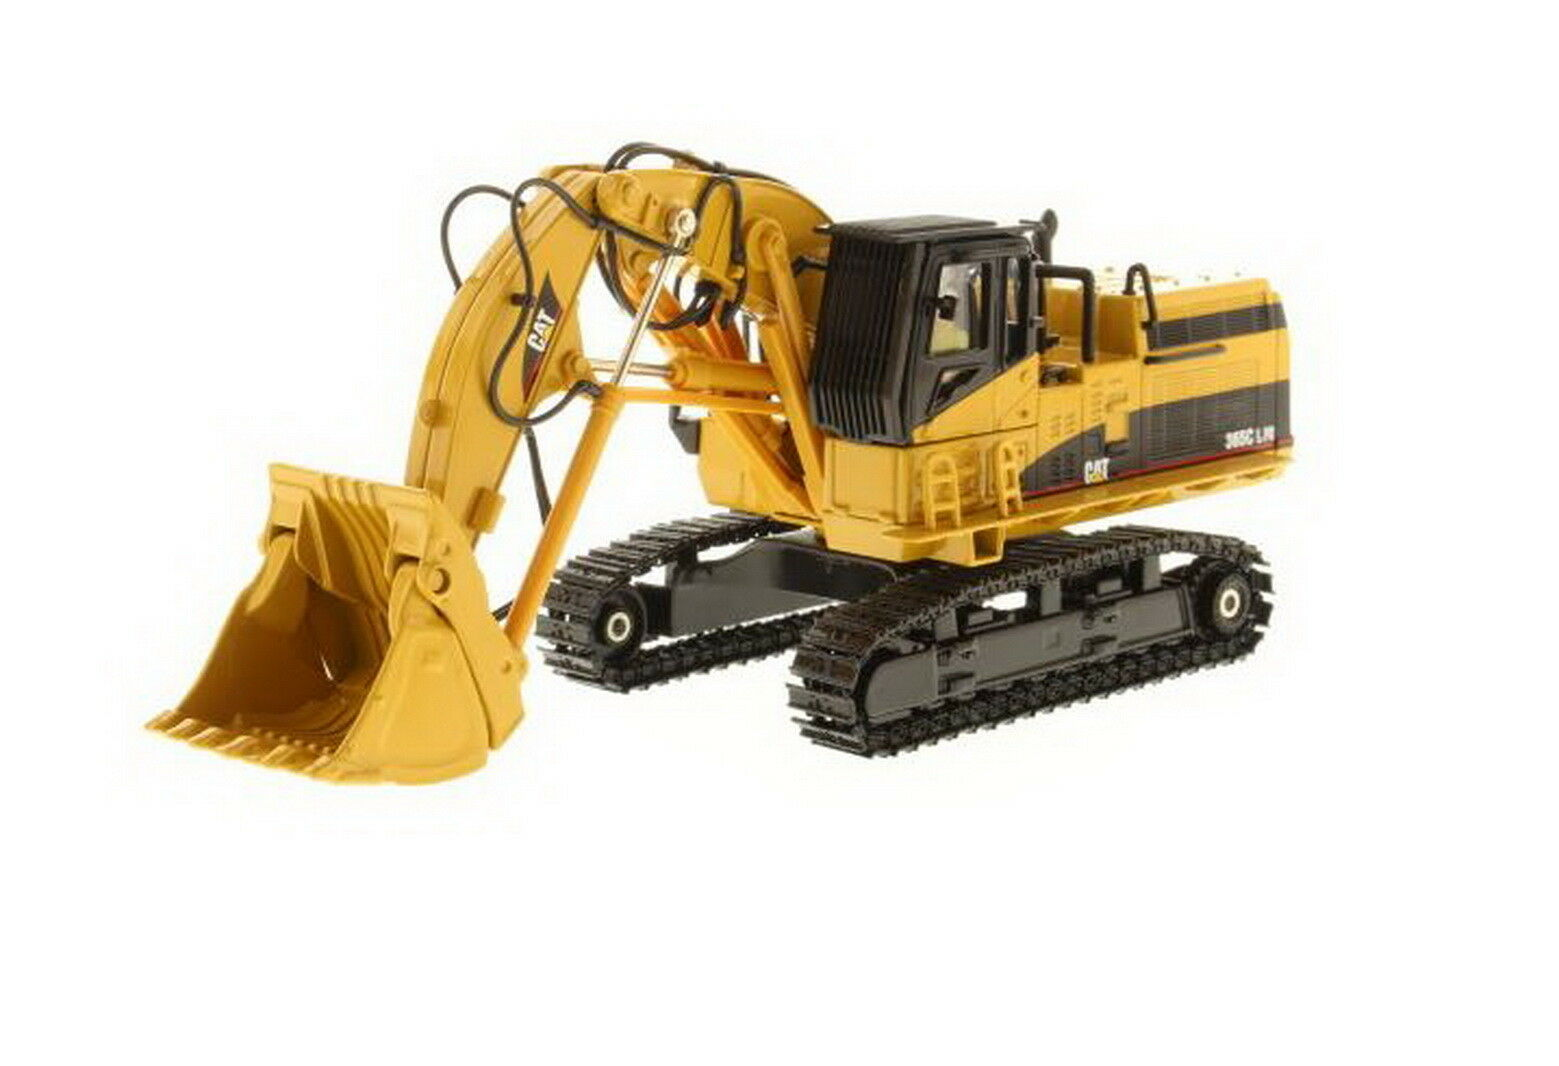 1/50 DM Caterpillar Cat 365C Front Shovel Diecast Model 85160